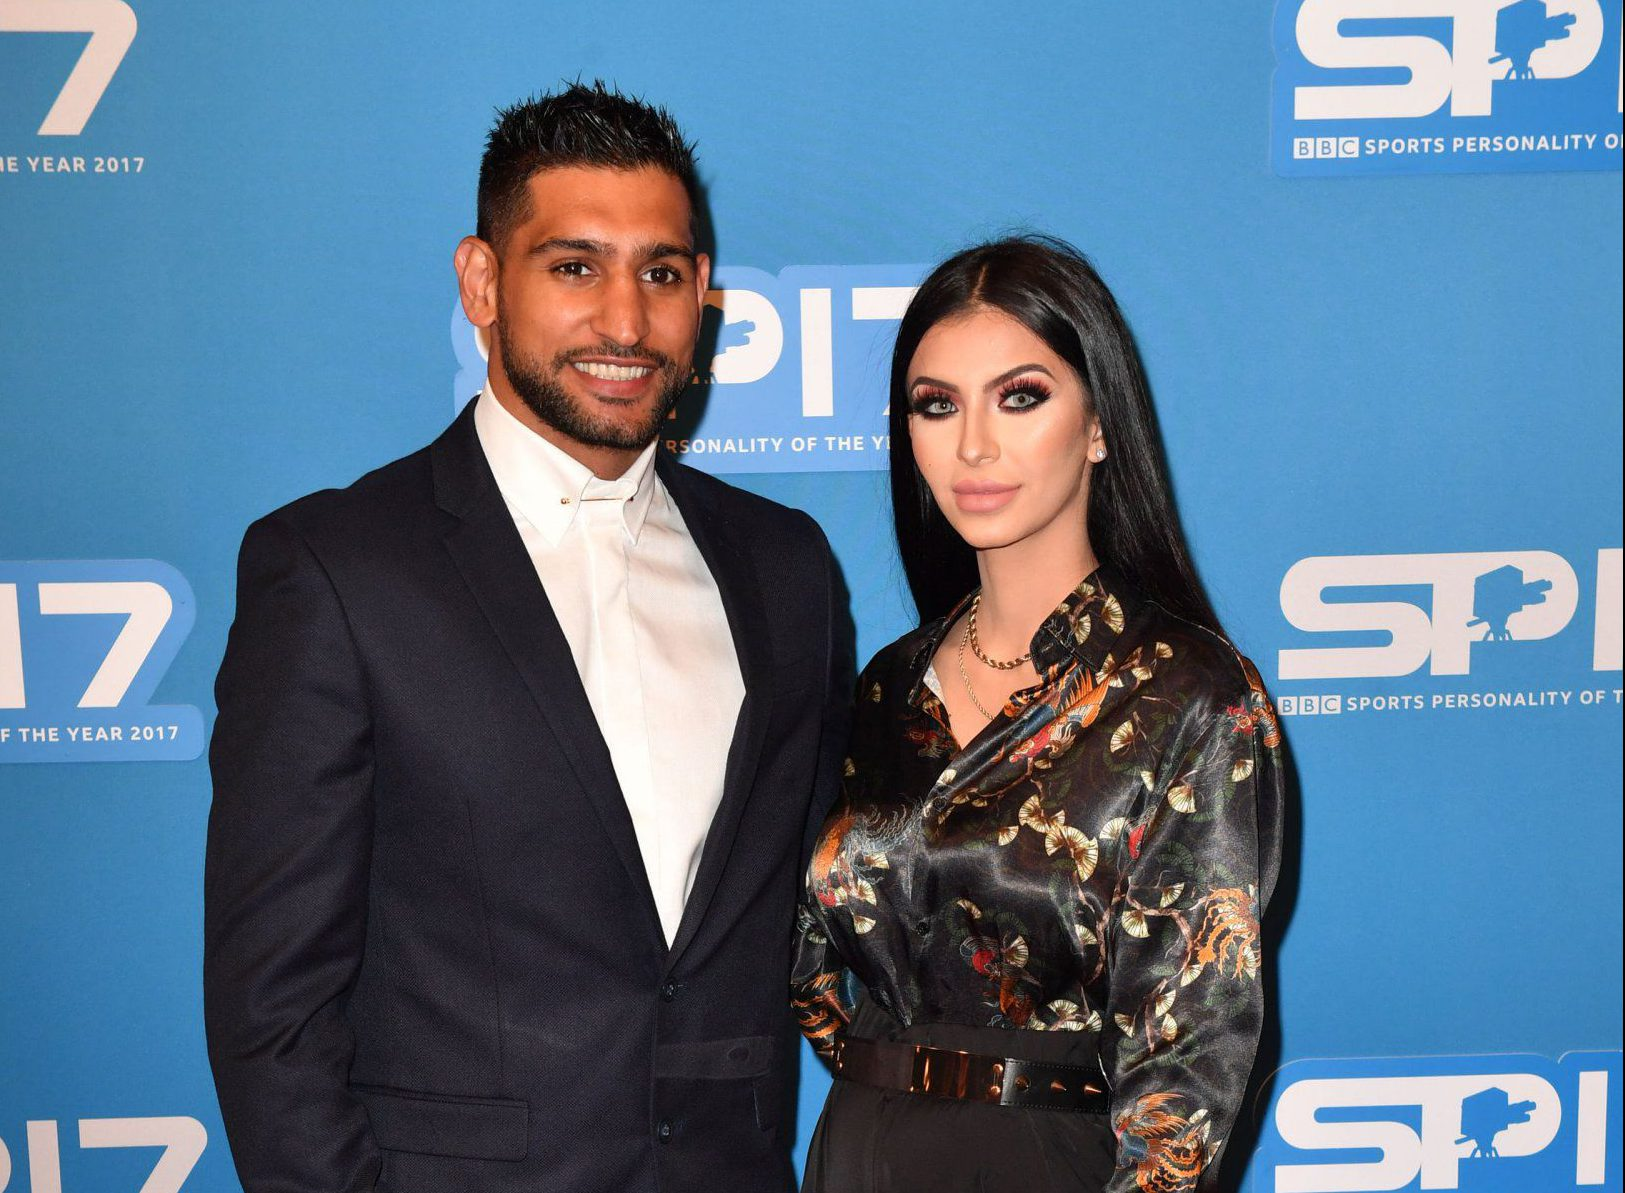 Amir Khan 'slept with model 17 days after Faryal Makhdoom gave birth' as his wife posts cryptic tweet